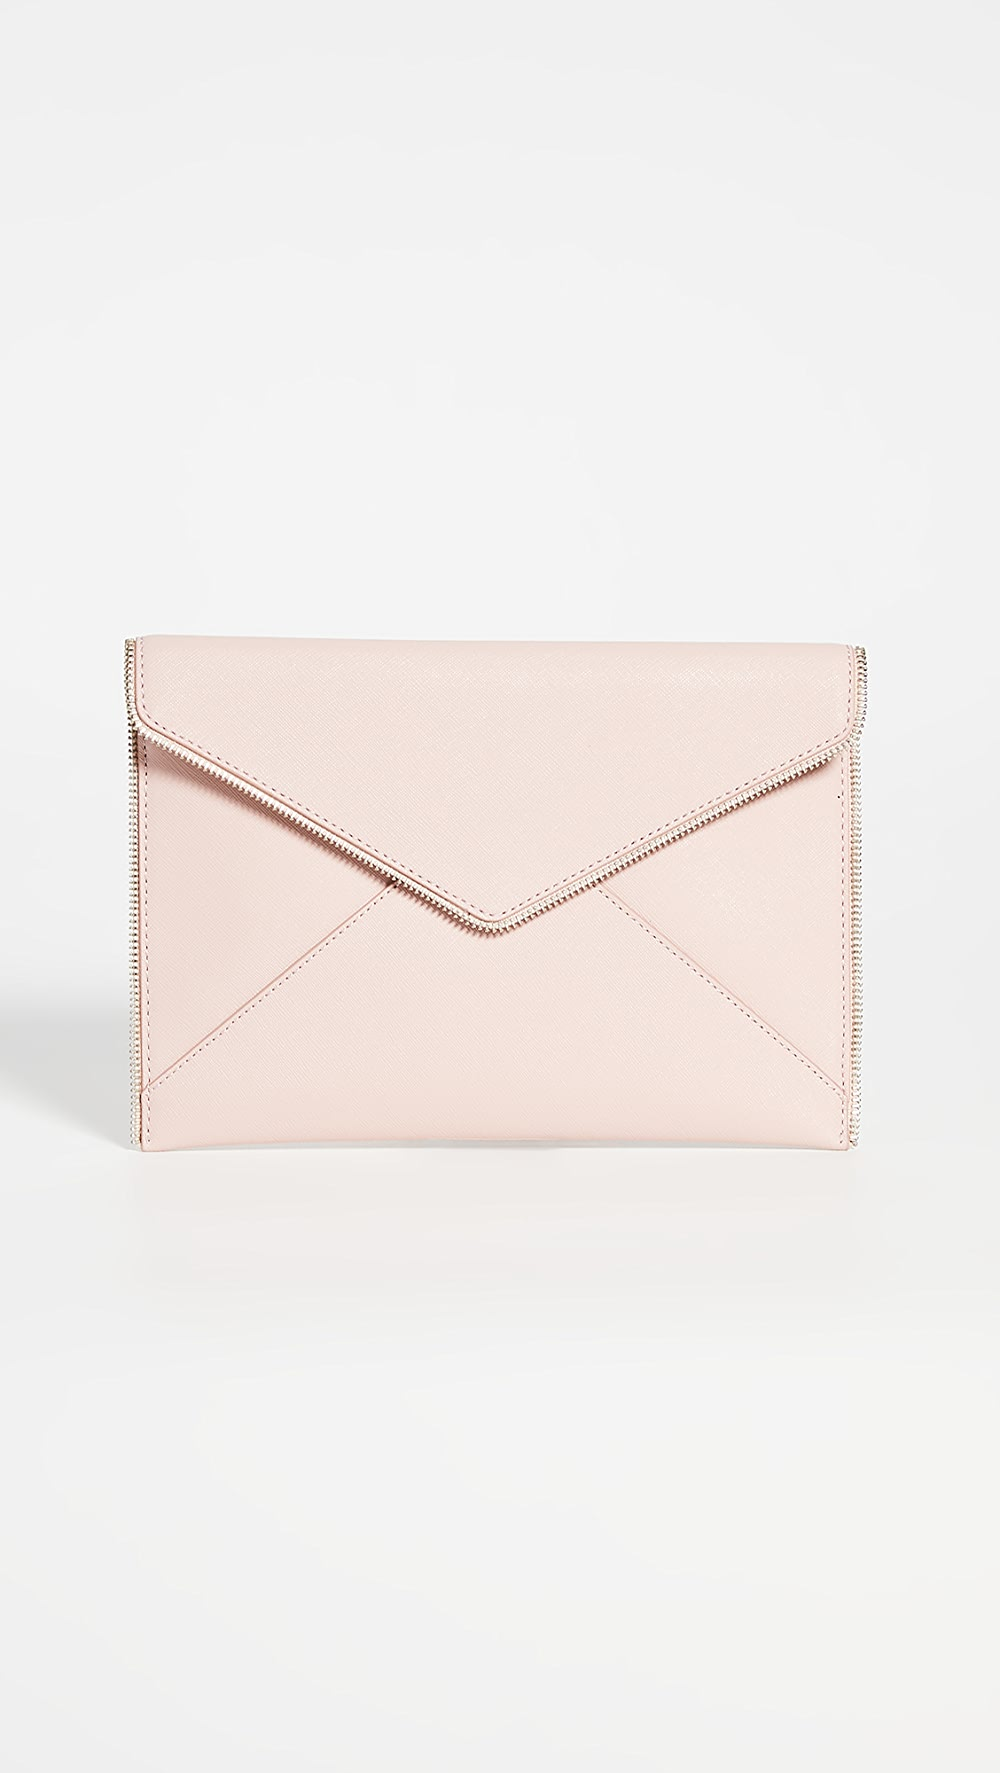 Aspiring Rebecca Minkoff - Leo Clutch Yet Not Vulgar